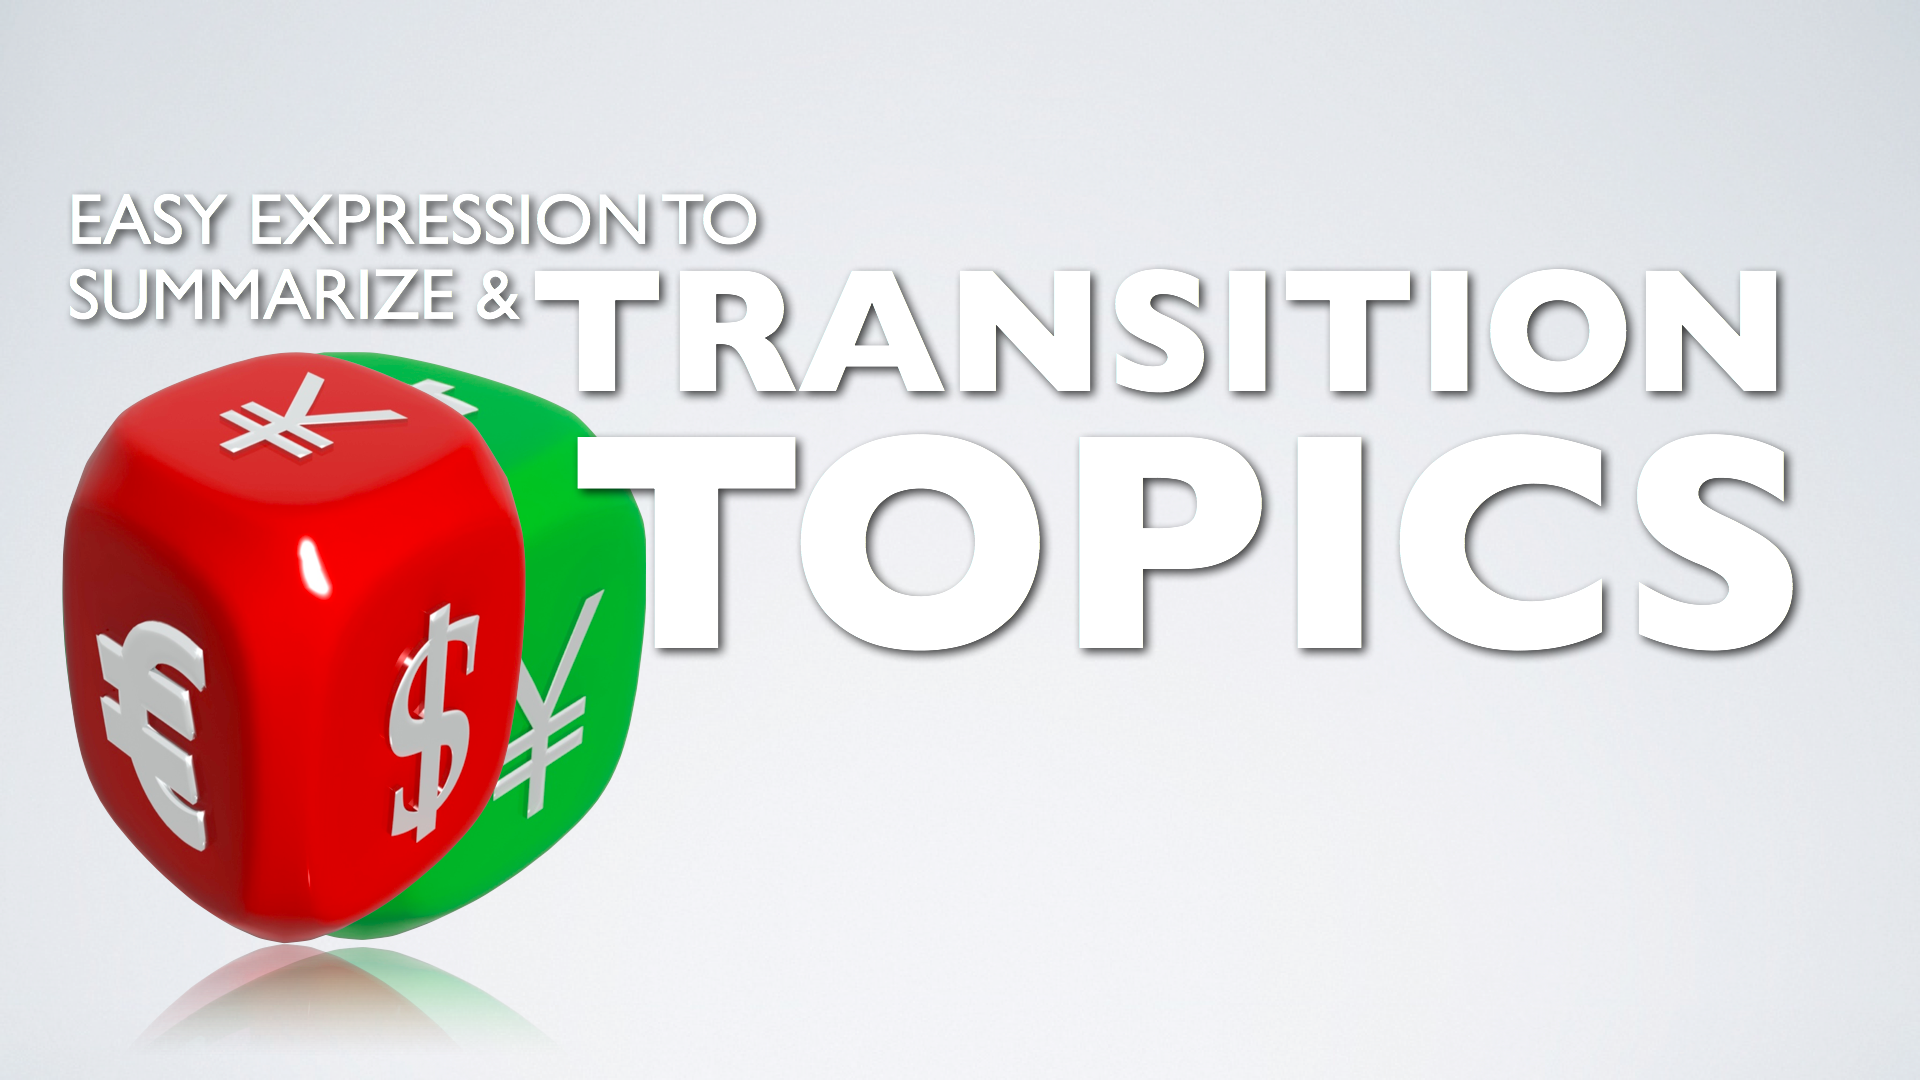 How to end a topic and transition in a presentation